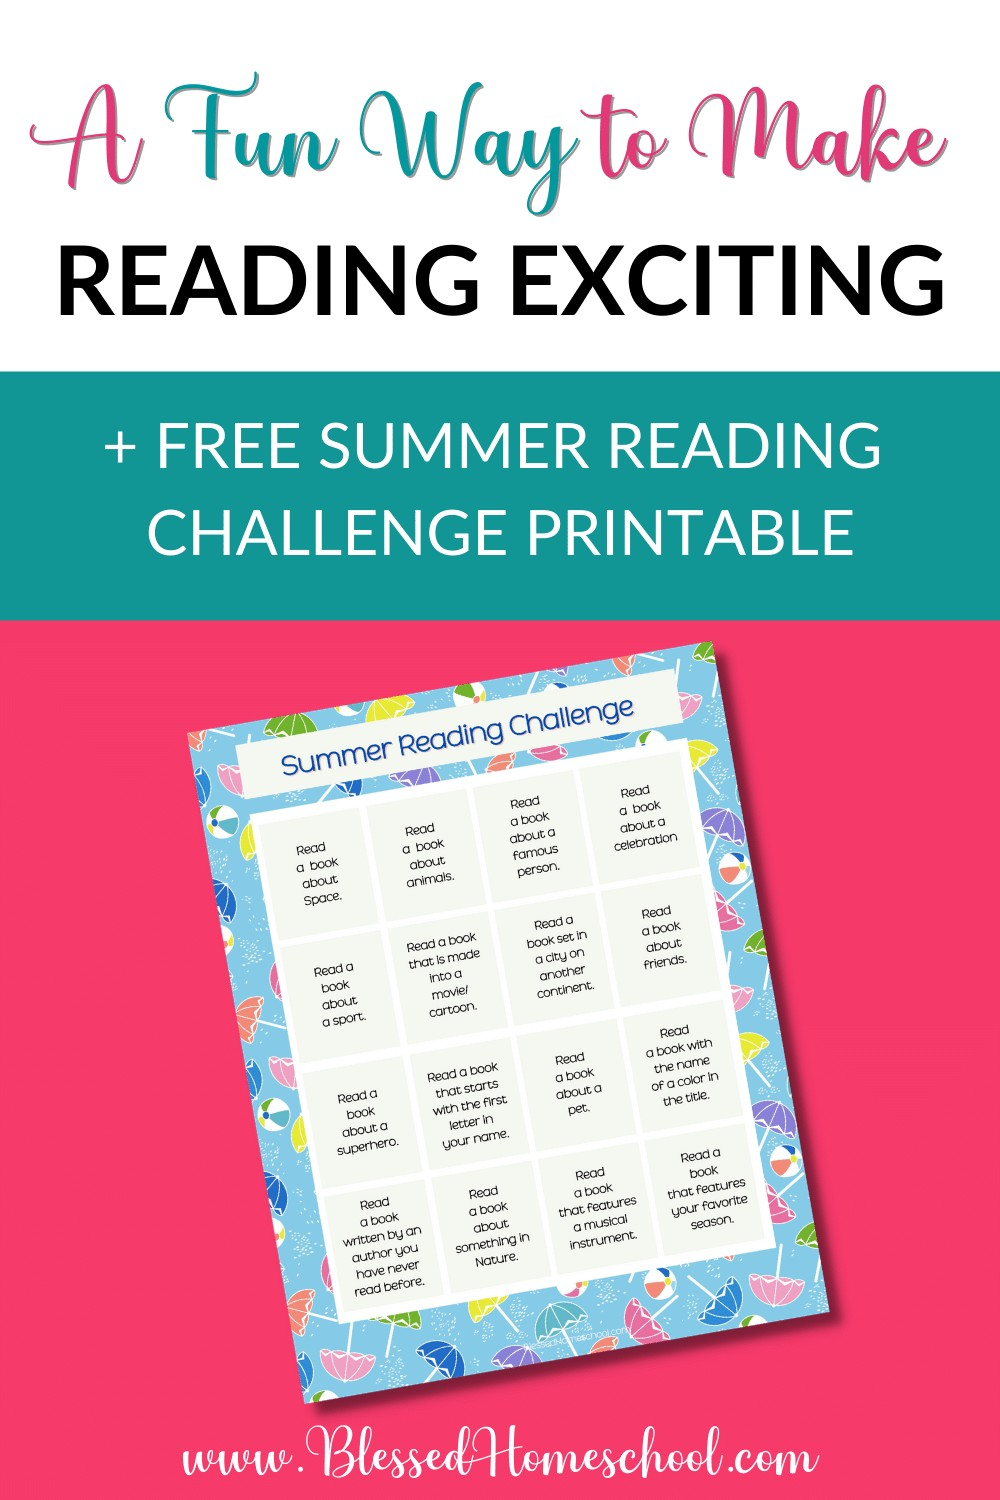 A fun way to make reading exciting Free summer reading challenge printable